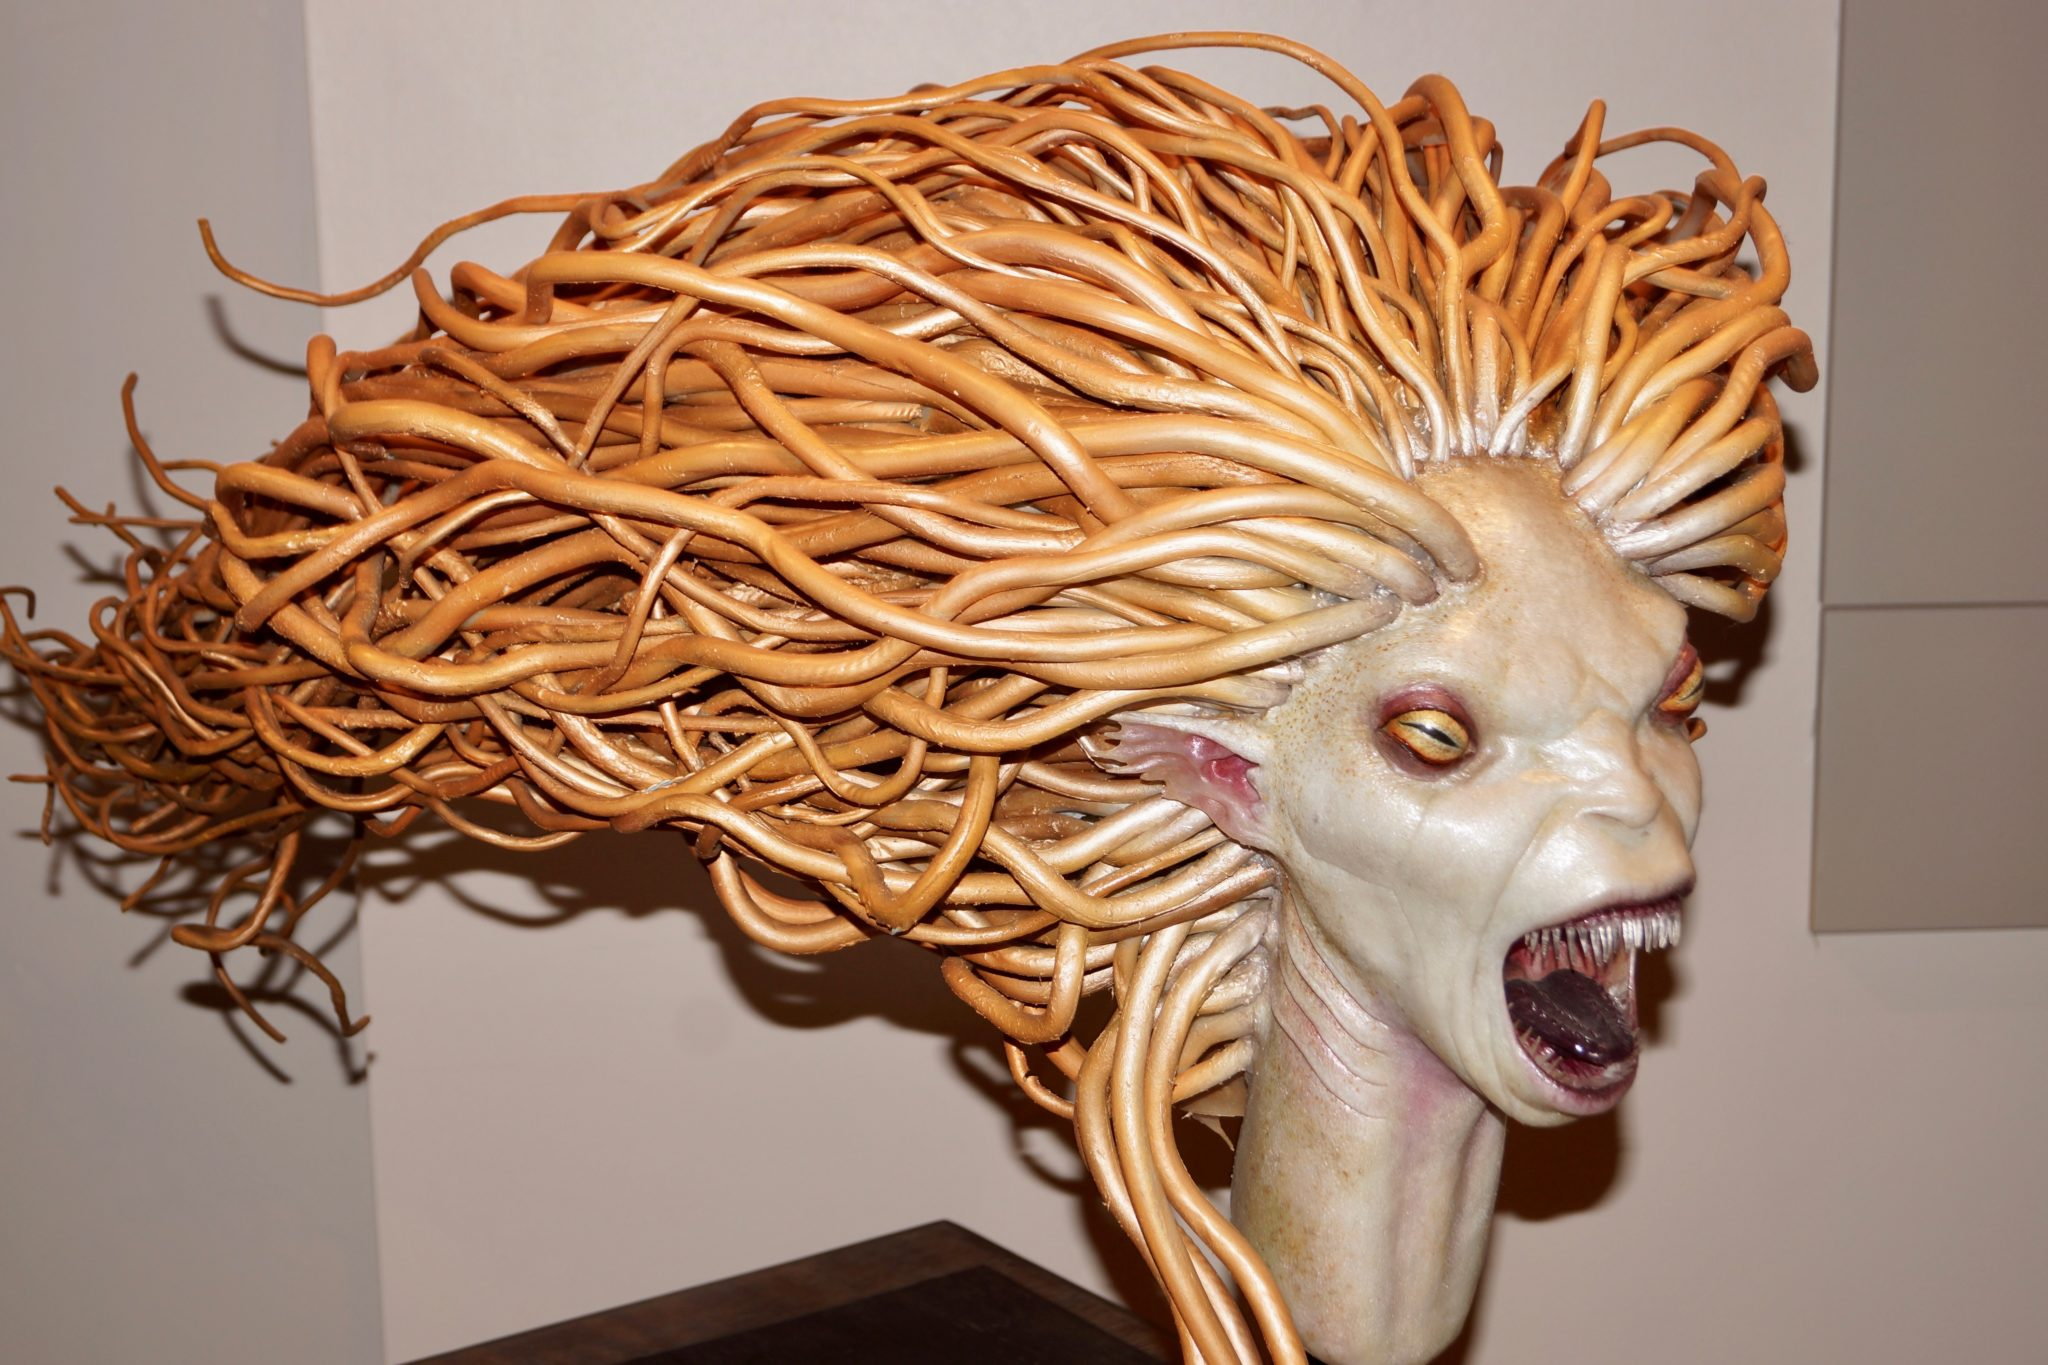 Harry Potter Mermaid Head, Creature Studio